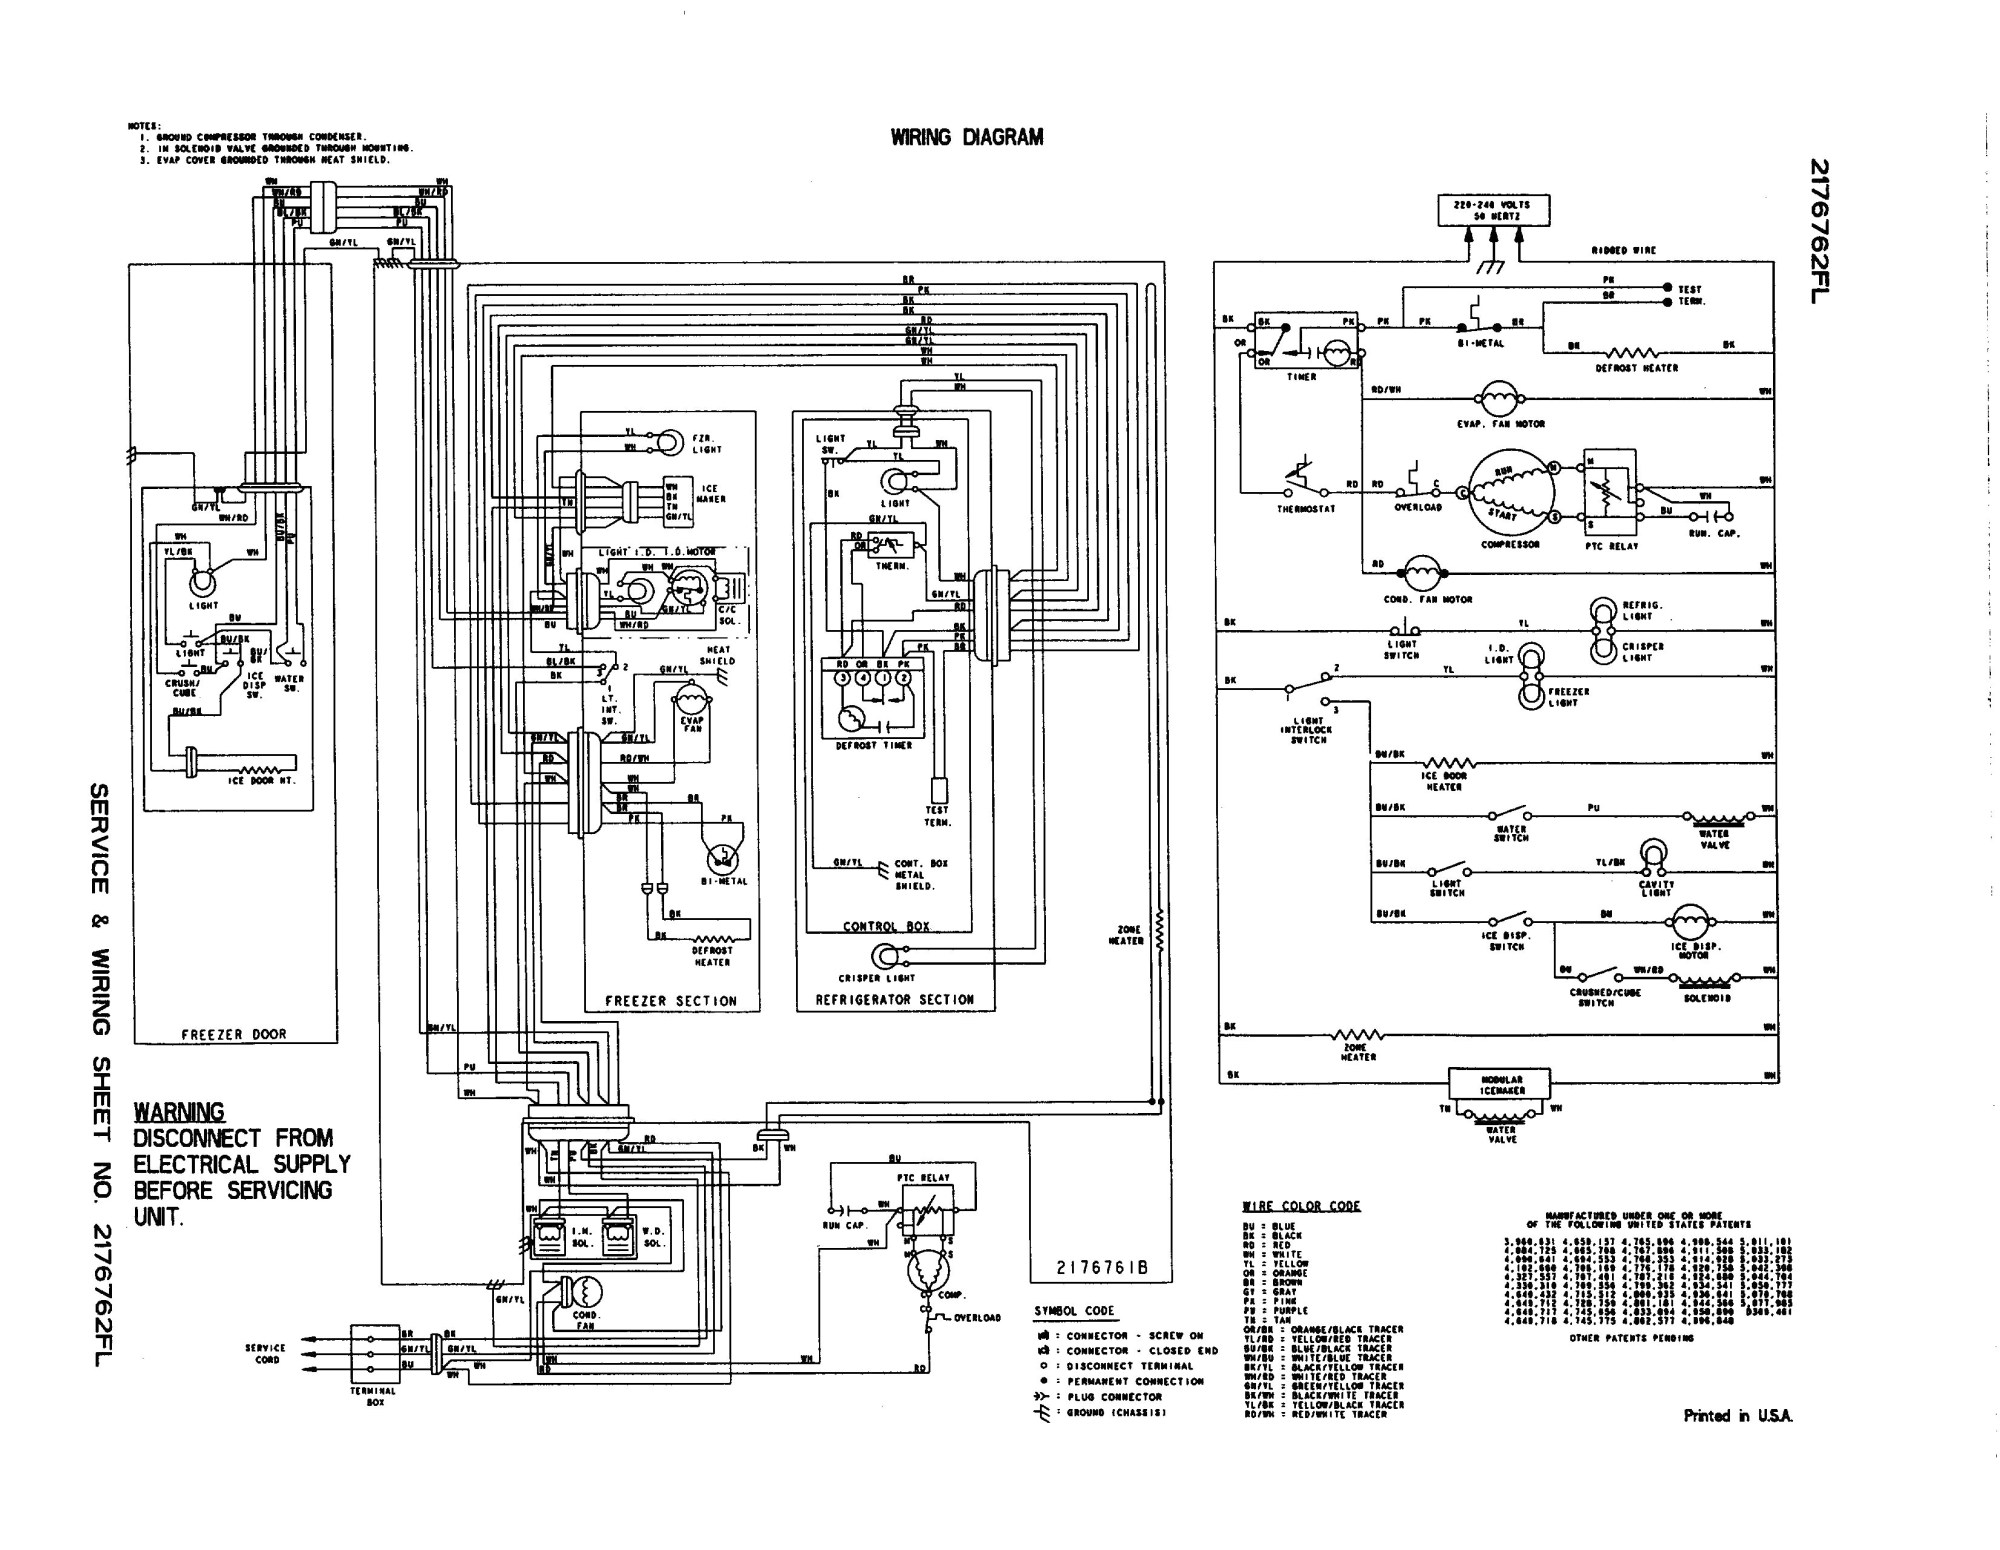 hight resolution of diagram refrigerator wiring whirlpool et86hmxlq wiring diagram sheet wiring diagram for whirlpool dishwasher whirlpool refrigerator schematic